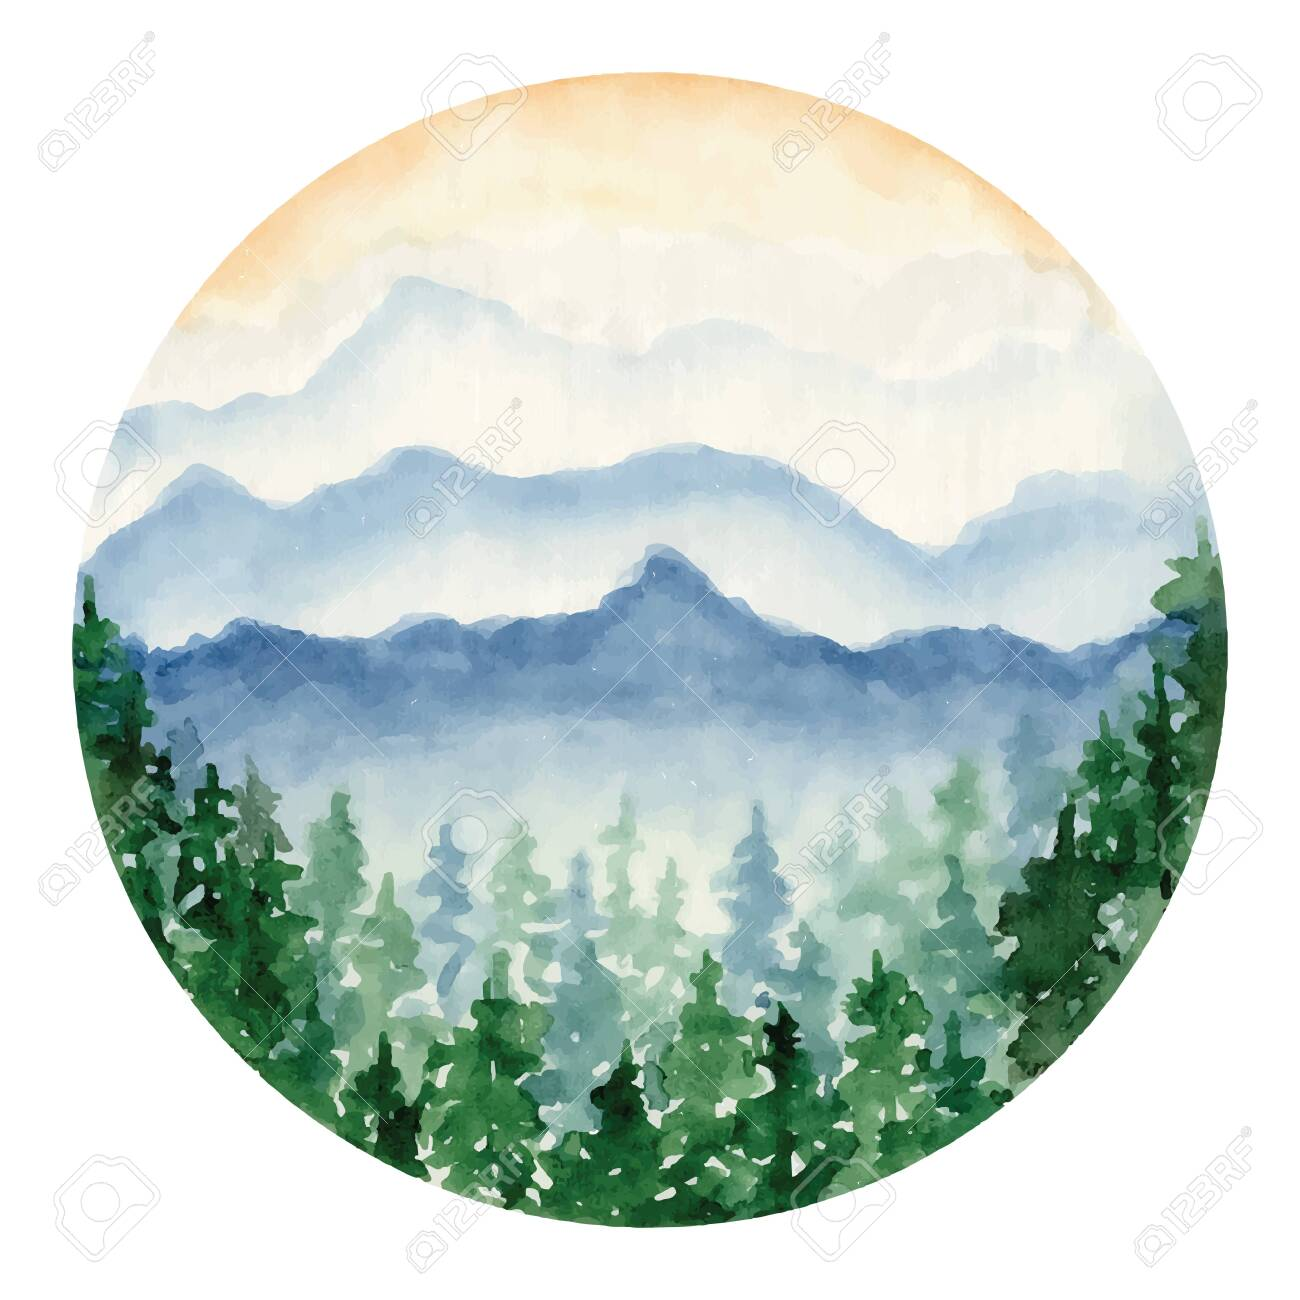 Watercolor Landscape With Pine And Fir Trees And Mountains Abstract Royalty Free Cliparts Vectors And Stock Illustration Image 136857585